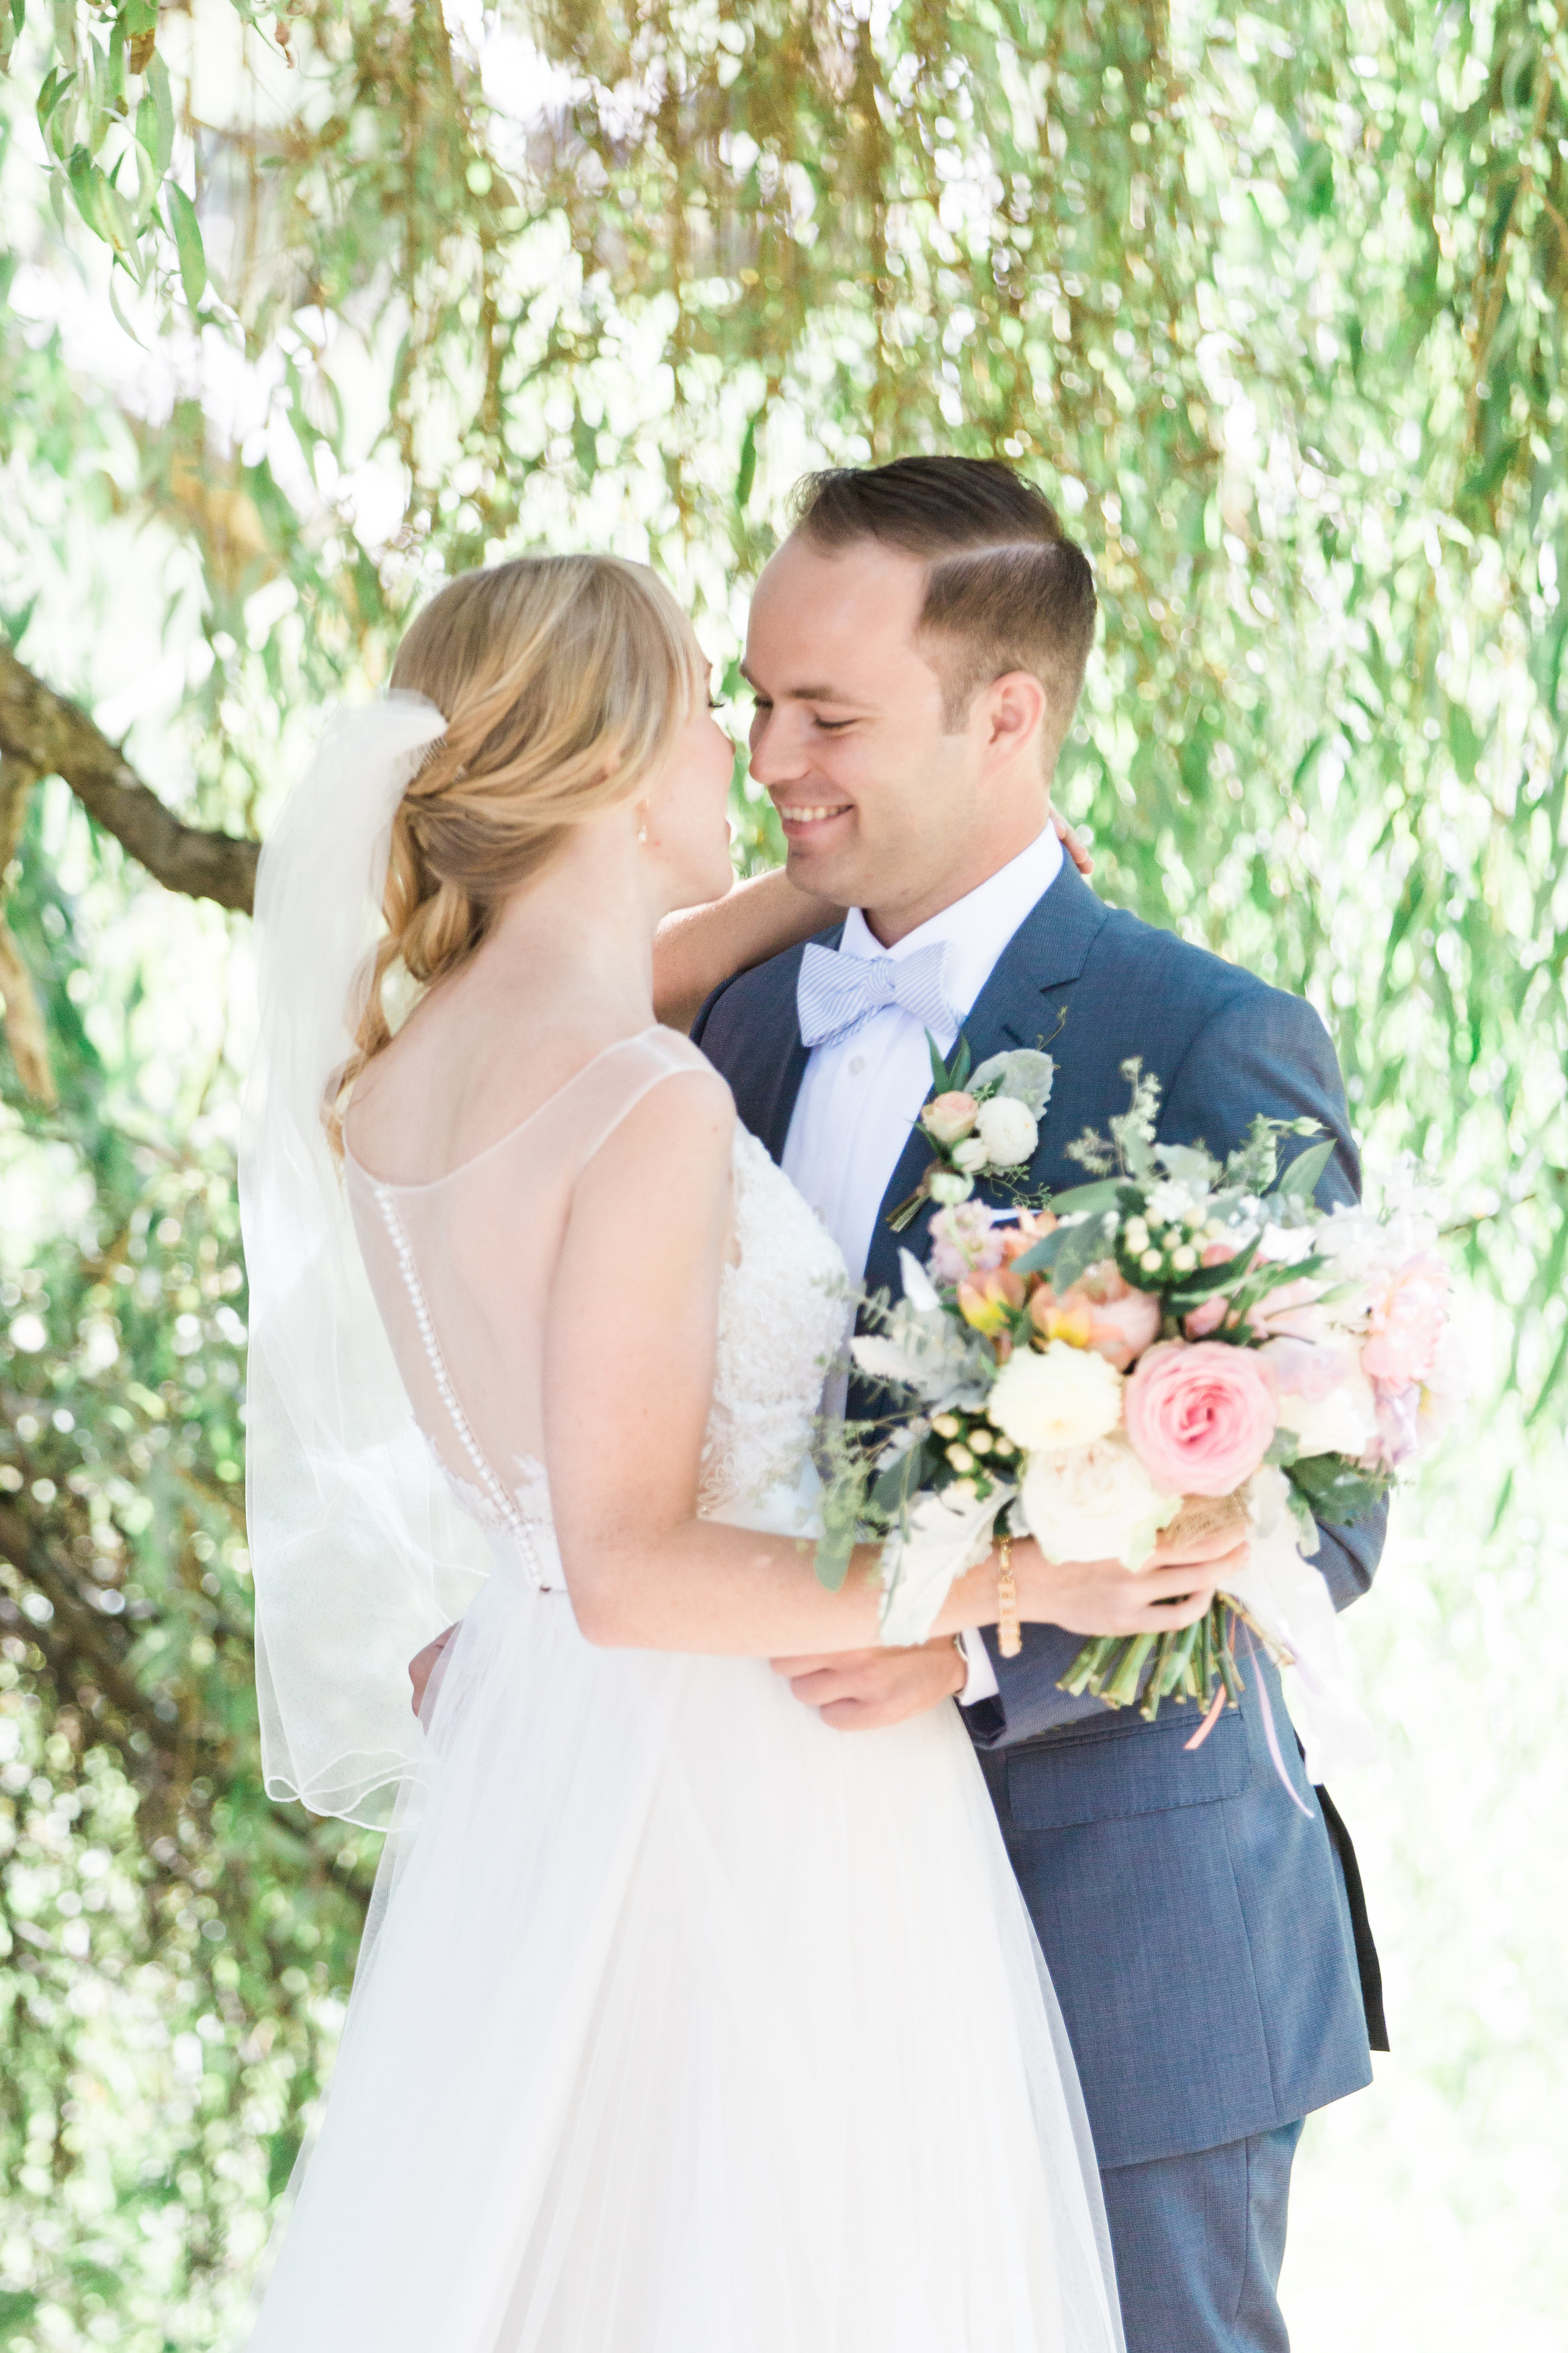 W + T - Romantic Outdoor Garden Style Wedding at UBC Botanical Gardens, Vancouver